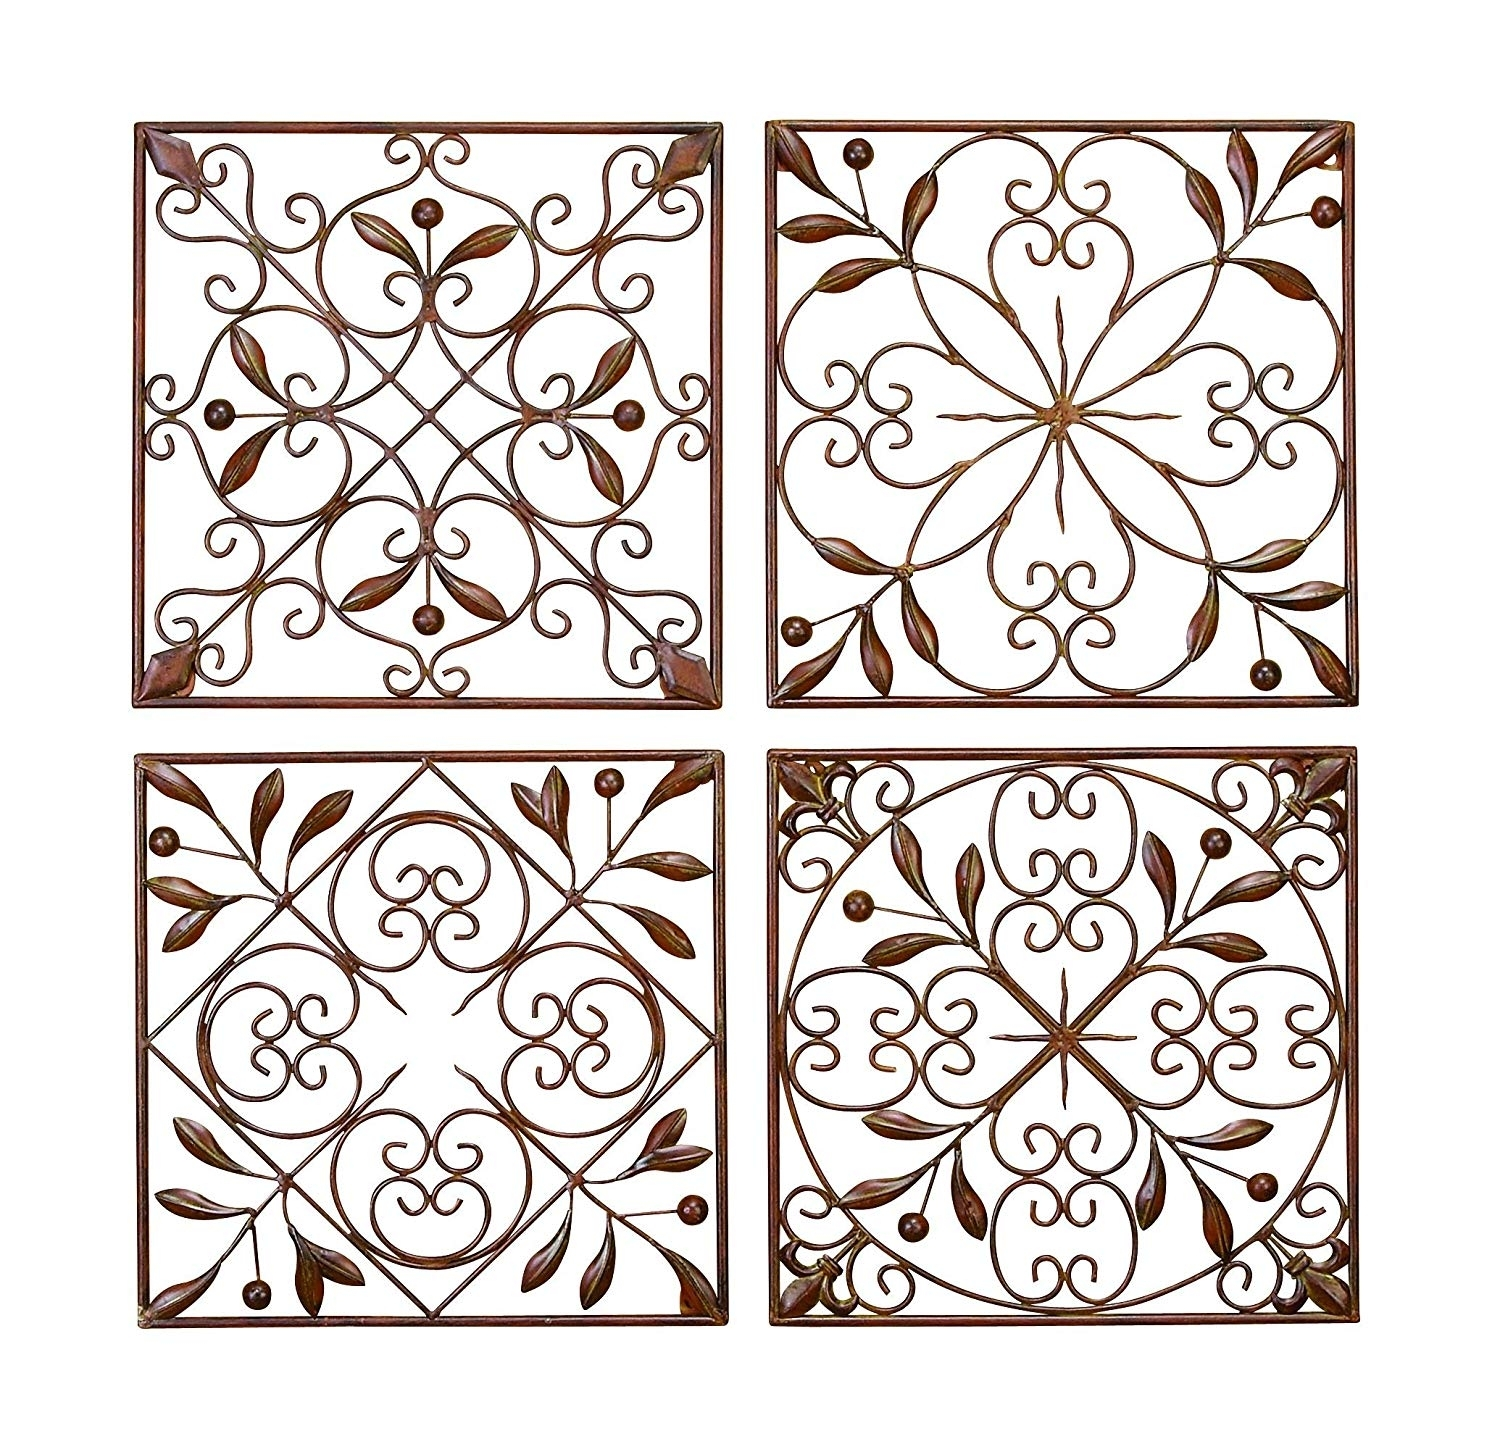 Amazon: Deco 79 50035 Metal Wall Decor Set Of 4: Home & Kitchen with regard to Iron Wall Art (Image 3 of 20)